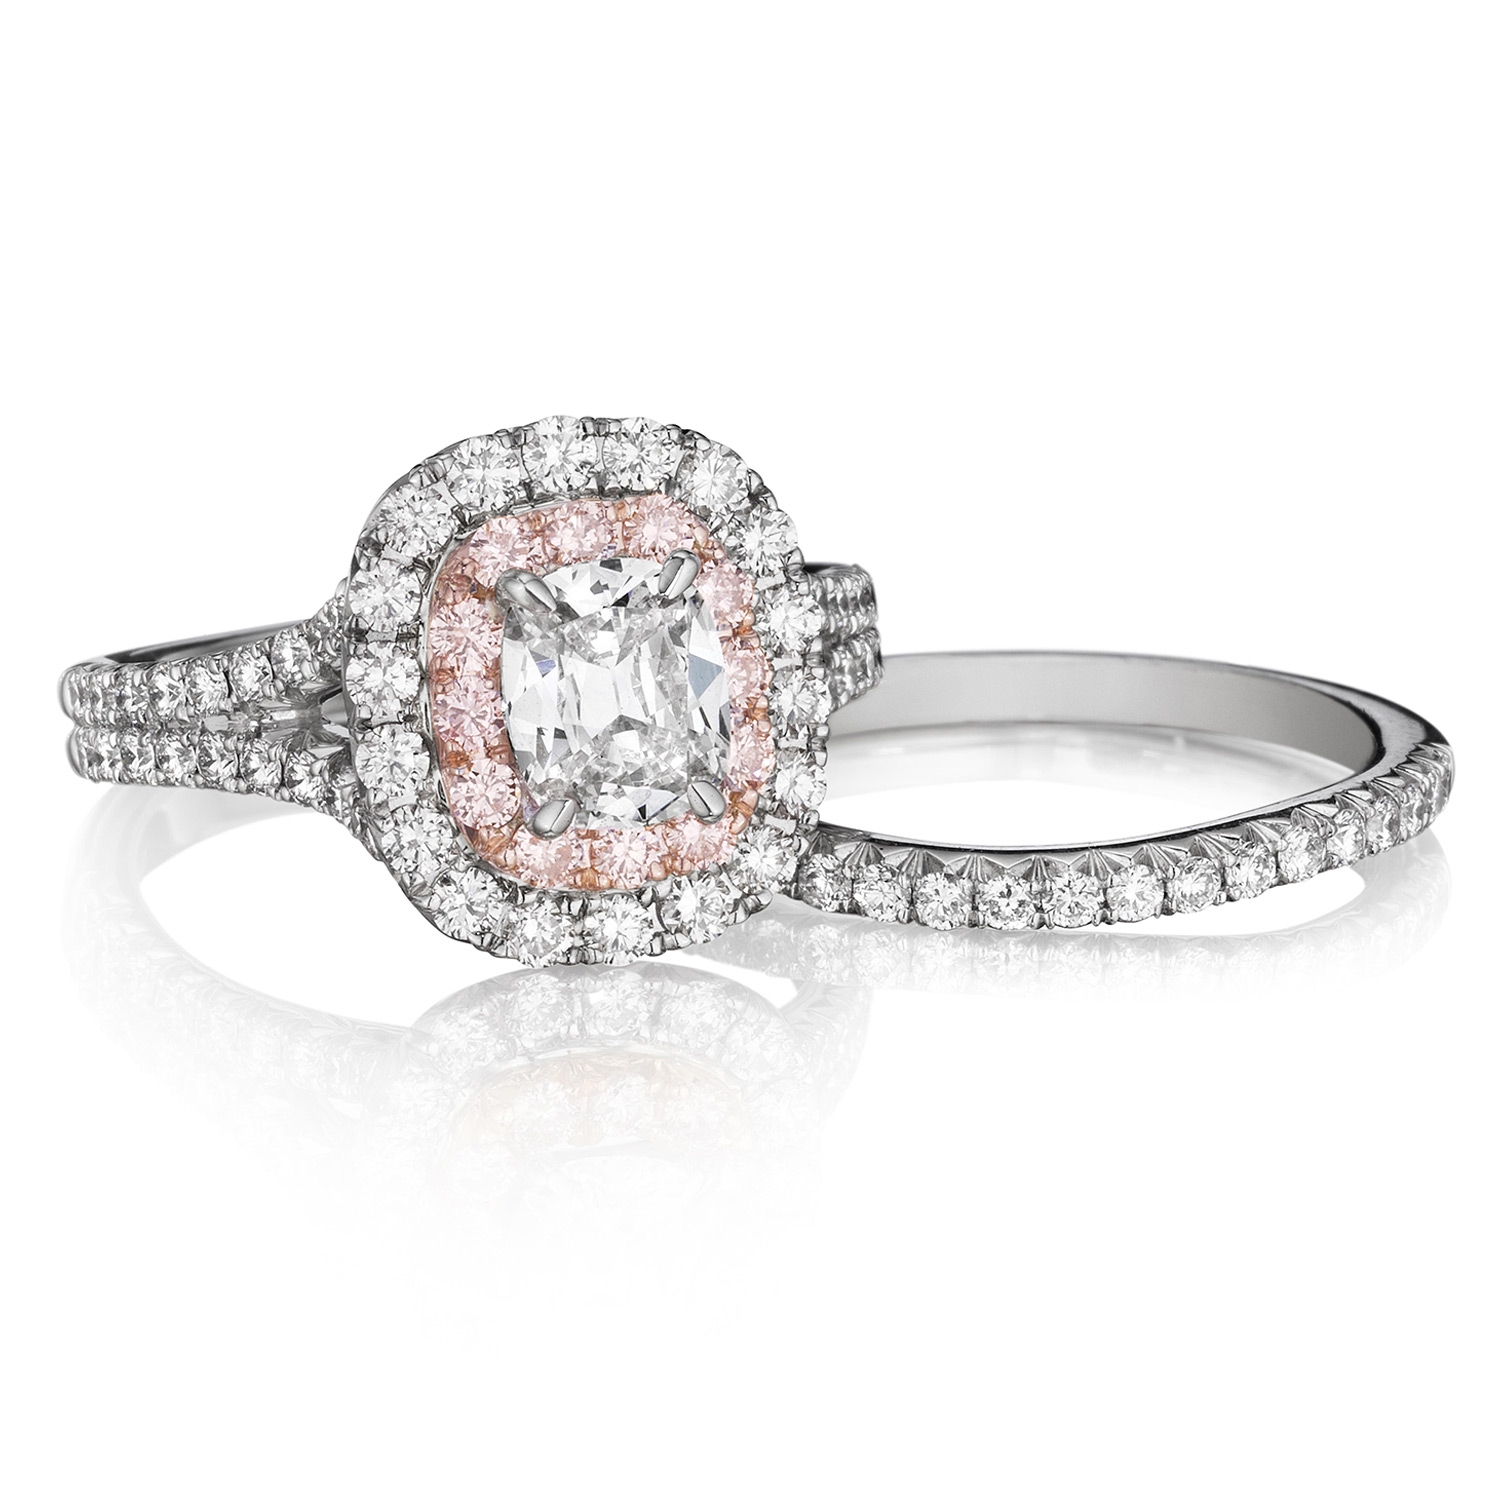 Henri Daussi AQSP Cushion Double Halo with Pink Diamonds Engagement Ring Alternative View 2